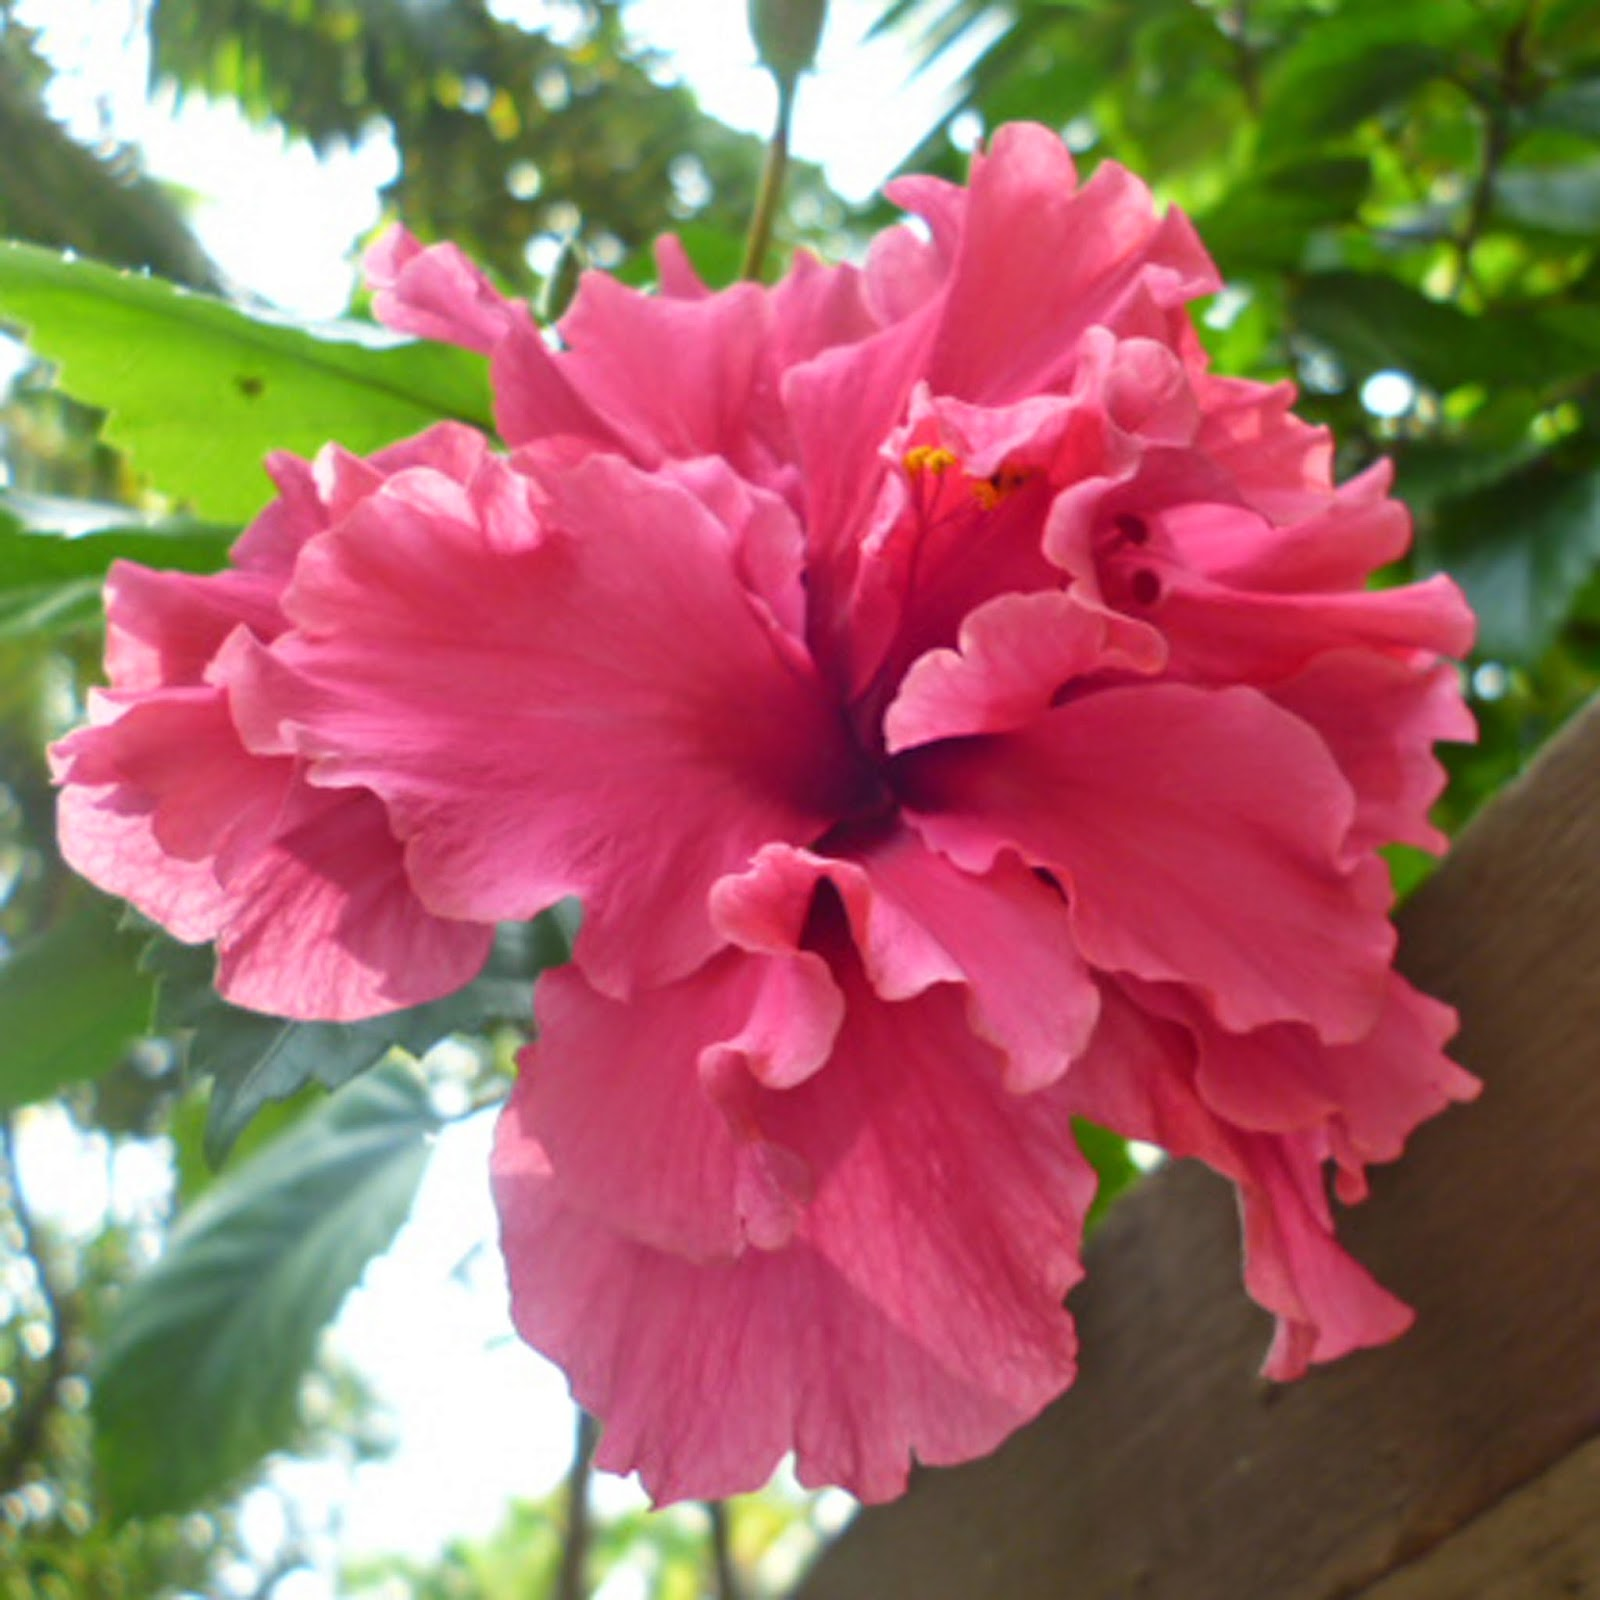 Infoworld hibiscus rosa sinensis let us chant the glories of the sun god whose beauty rivals that of the japa hibiscus flowers izmirmasajfo